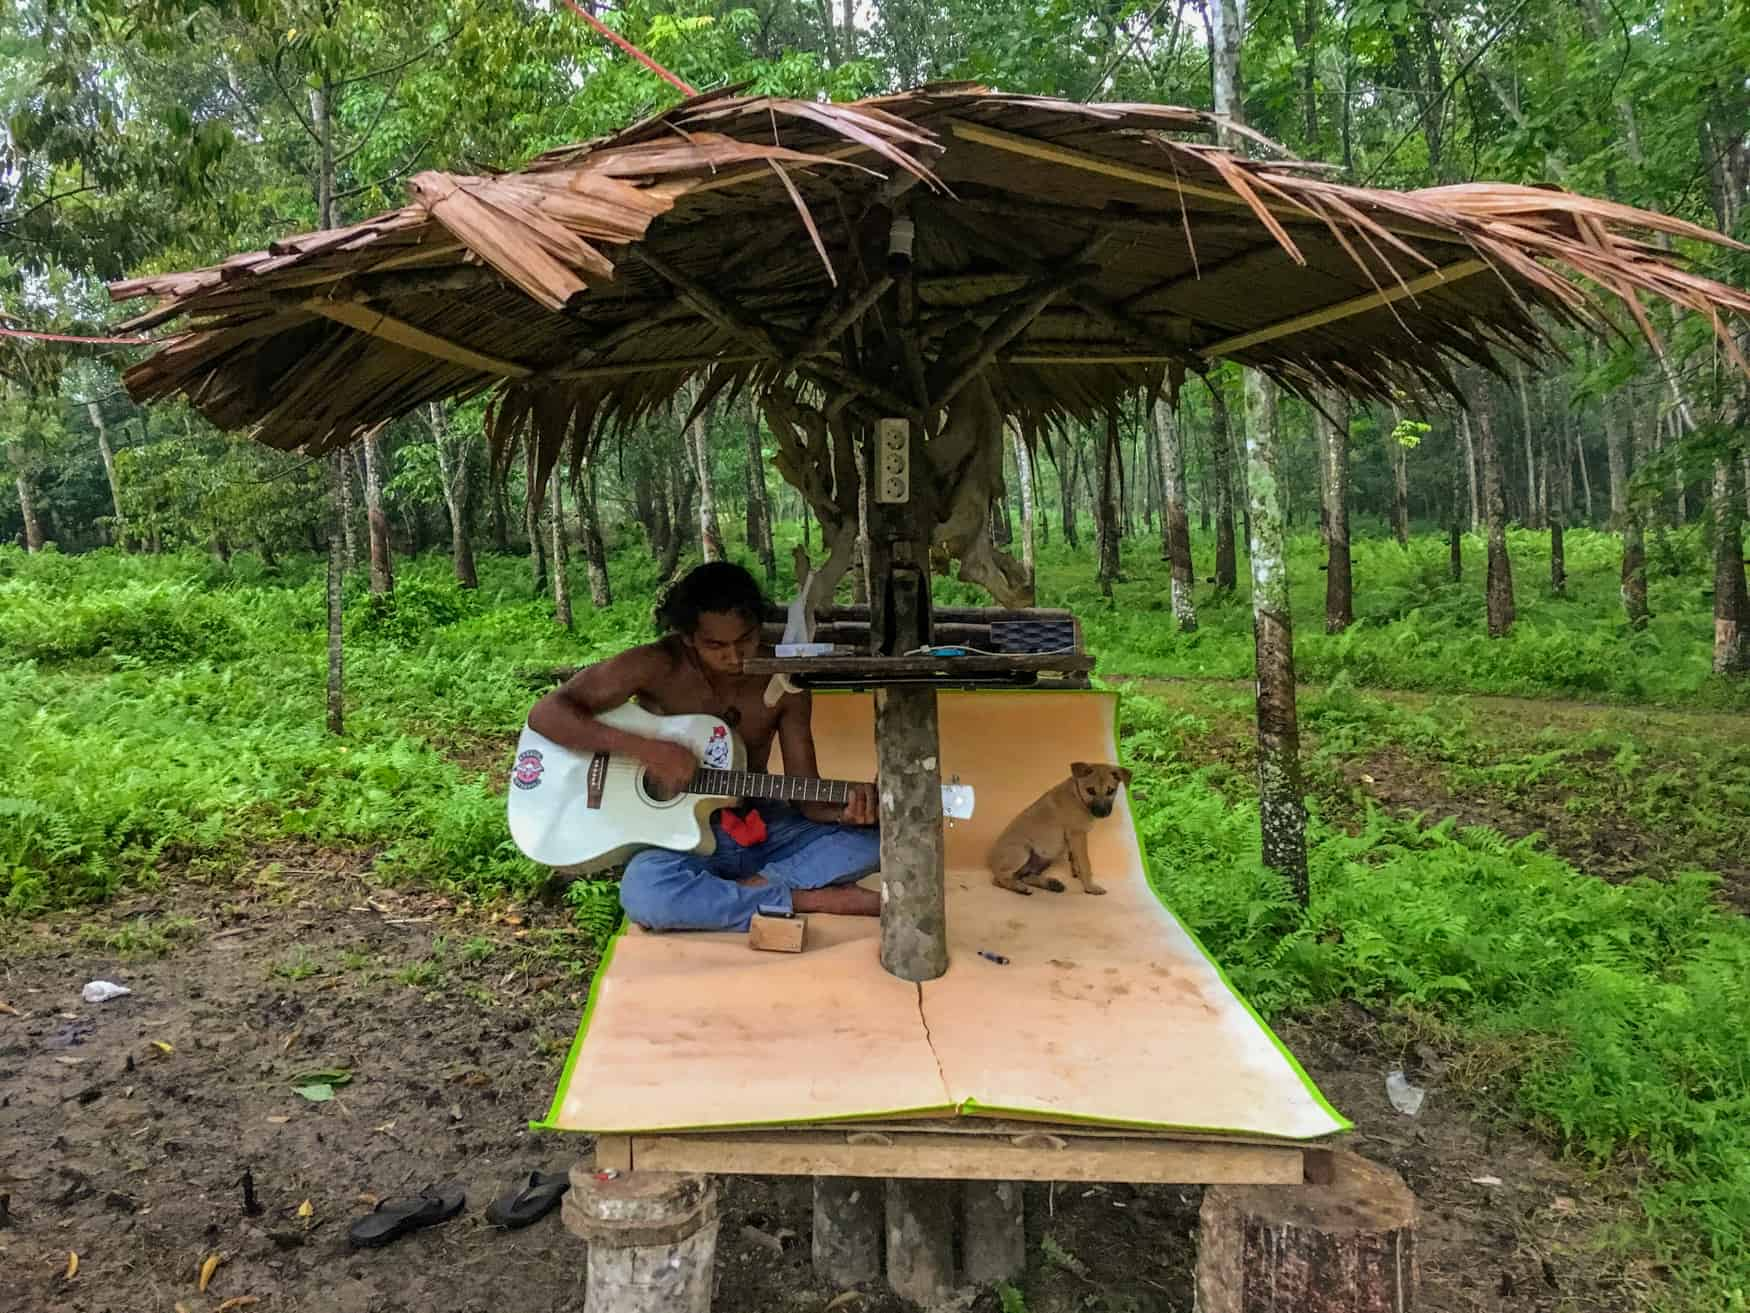 Indonesian man plays guitar under lean-to.